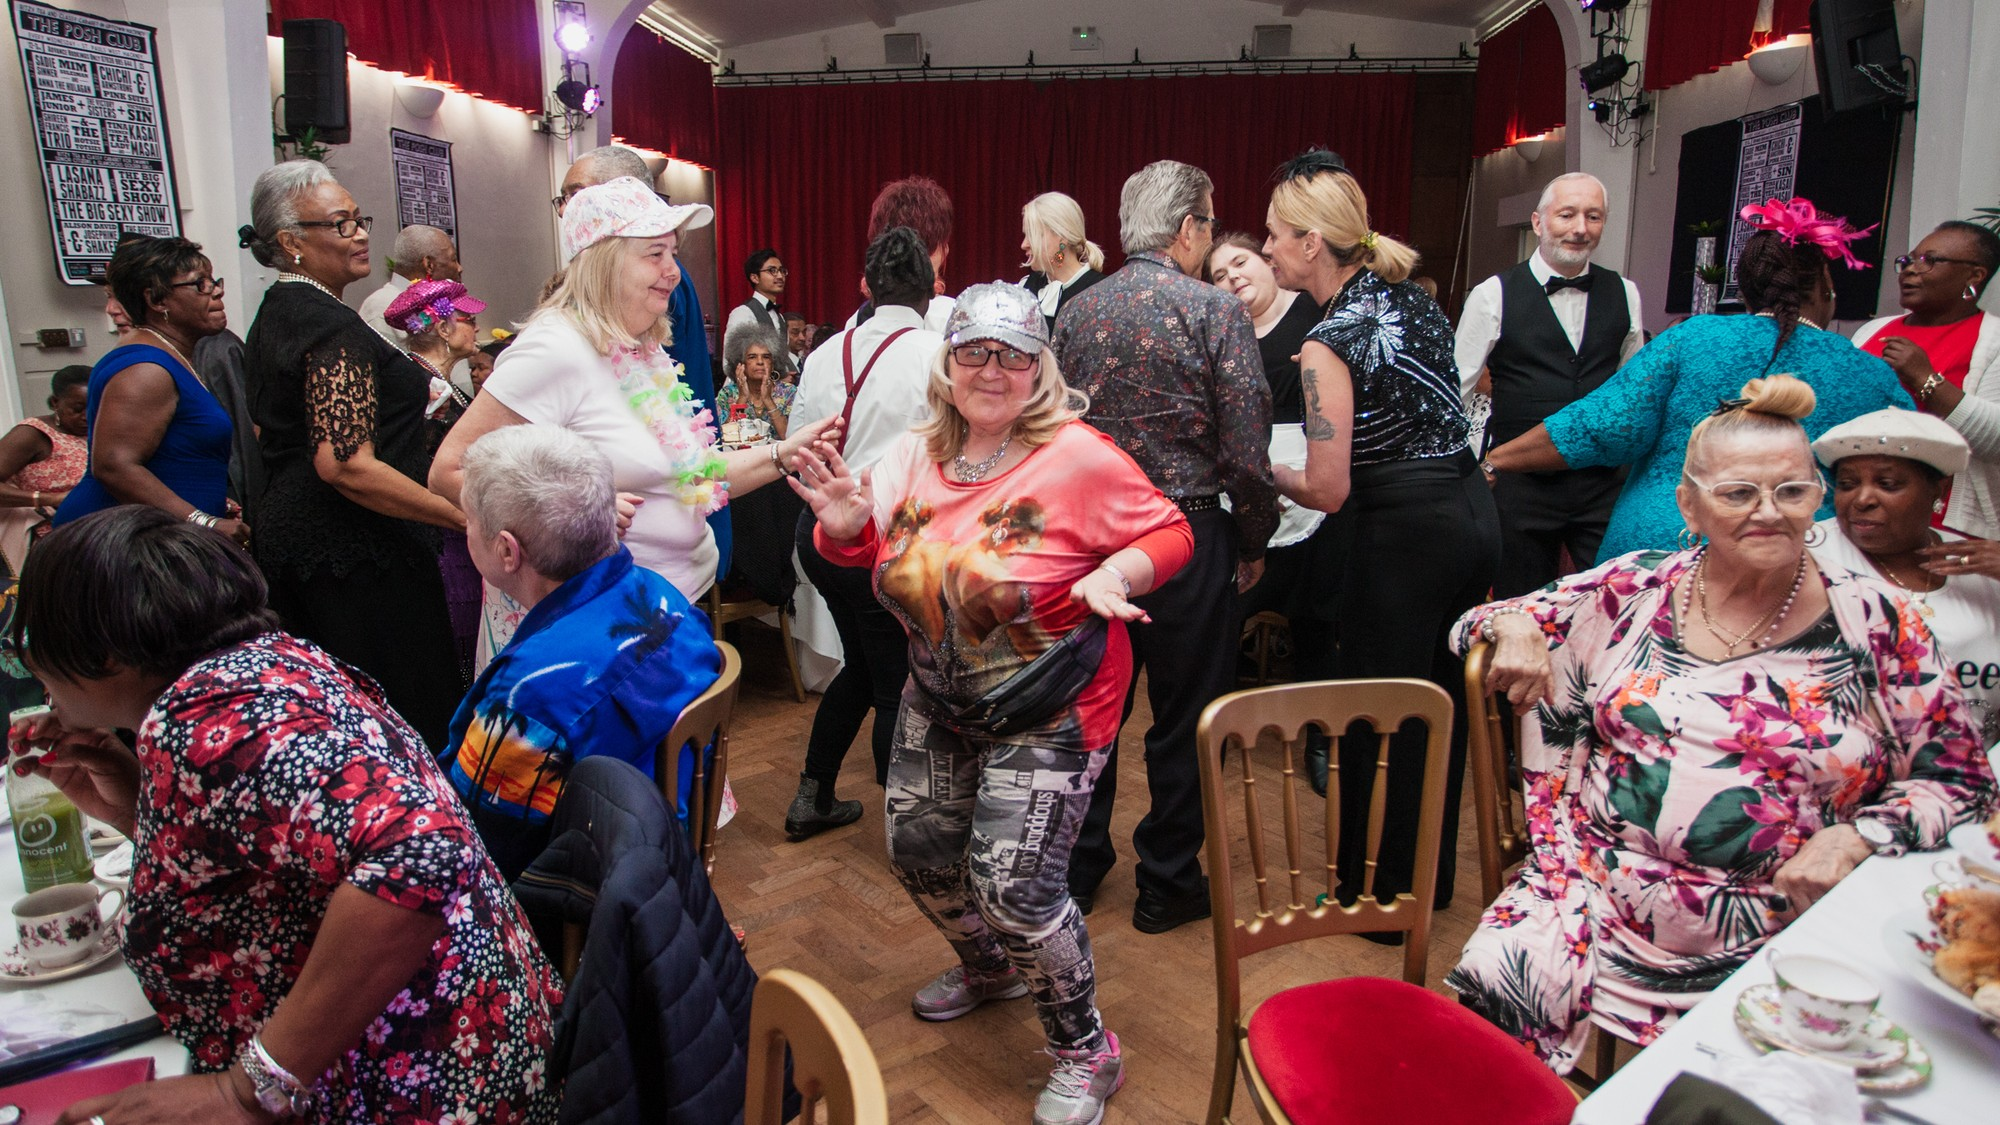 This Nightclub for the Elderly Is Fighting Loneliness with